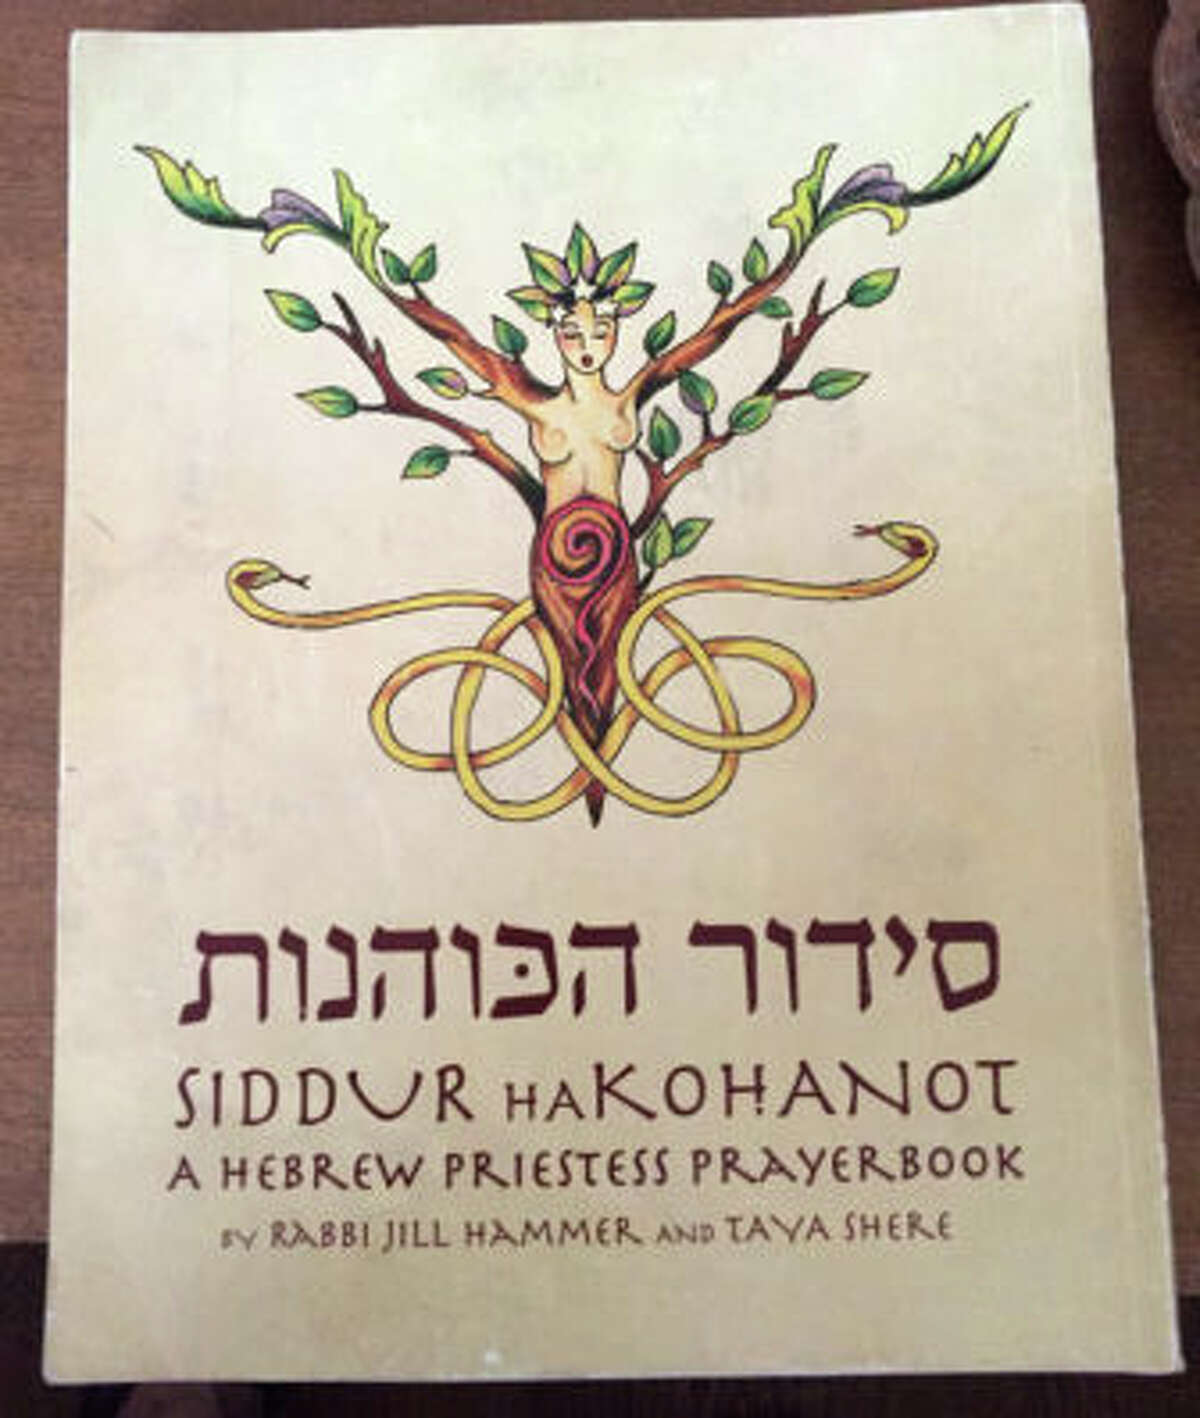 Priestess Rinah Rachel Galper uses the Hebrew Priestess Prayerbook during Shabbat services she conducts at her home. NOTE: Only available to RNS subscribers.